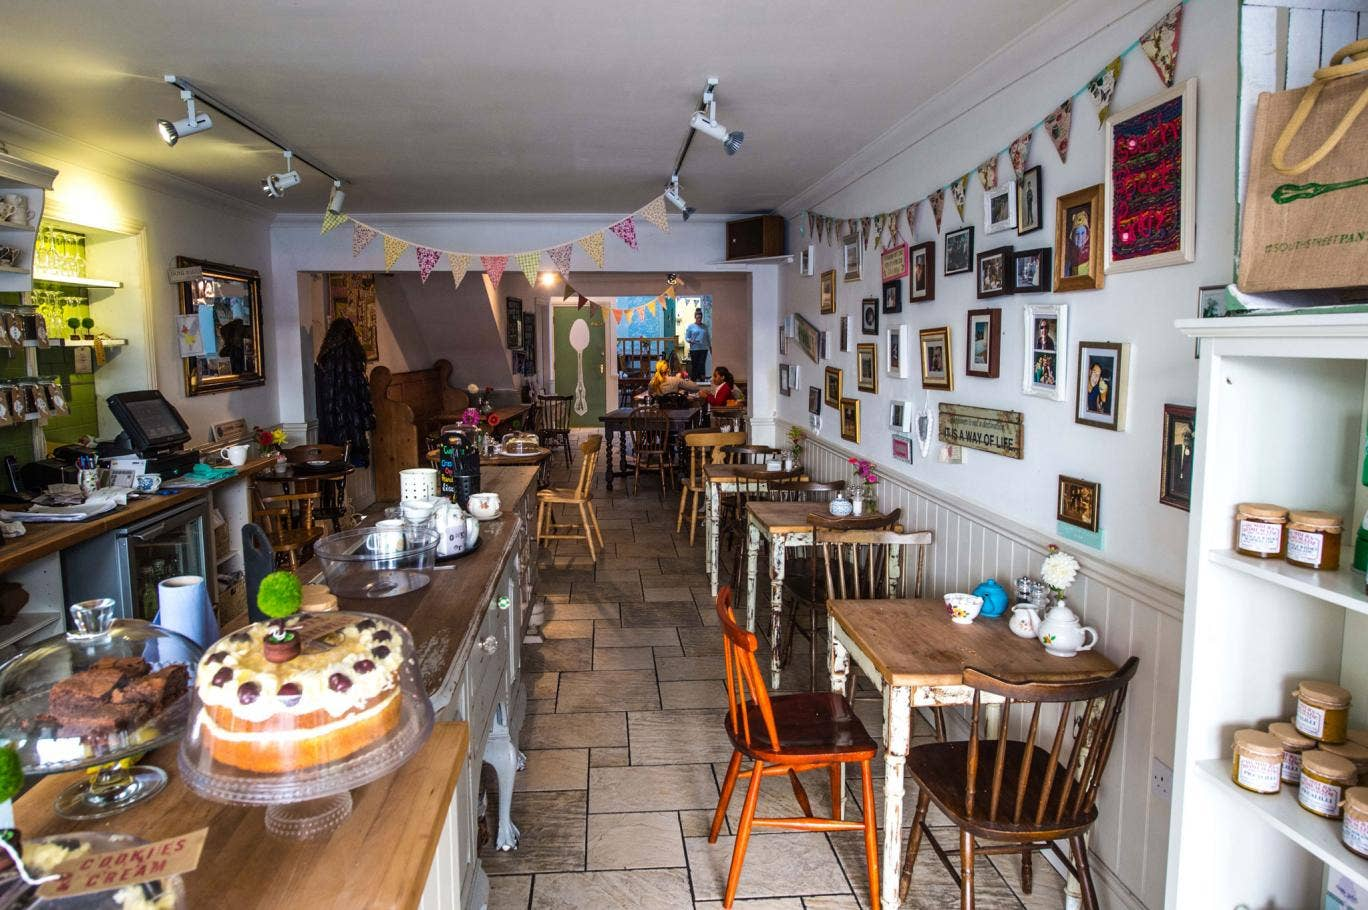 Jaunty: The South Street Pantry features mismatched furniture and a counter laden with cakes